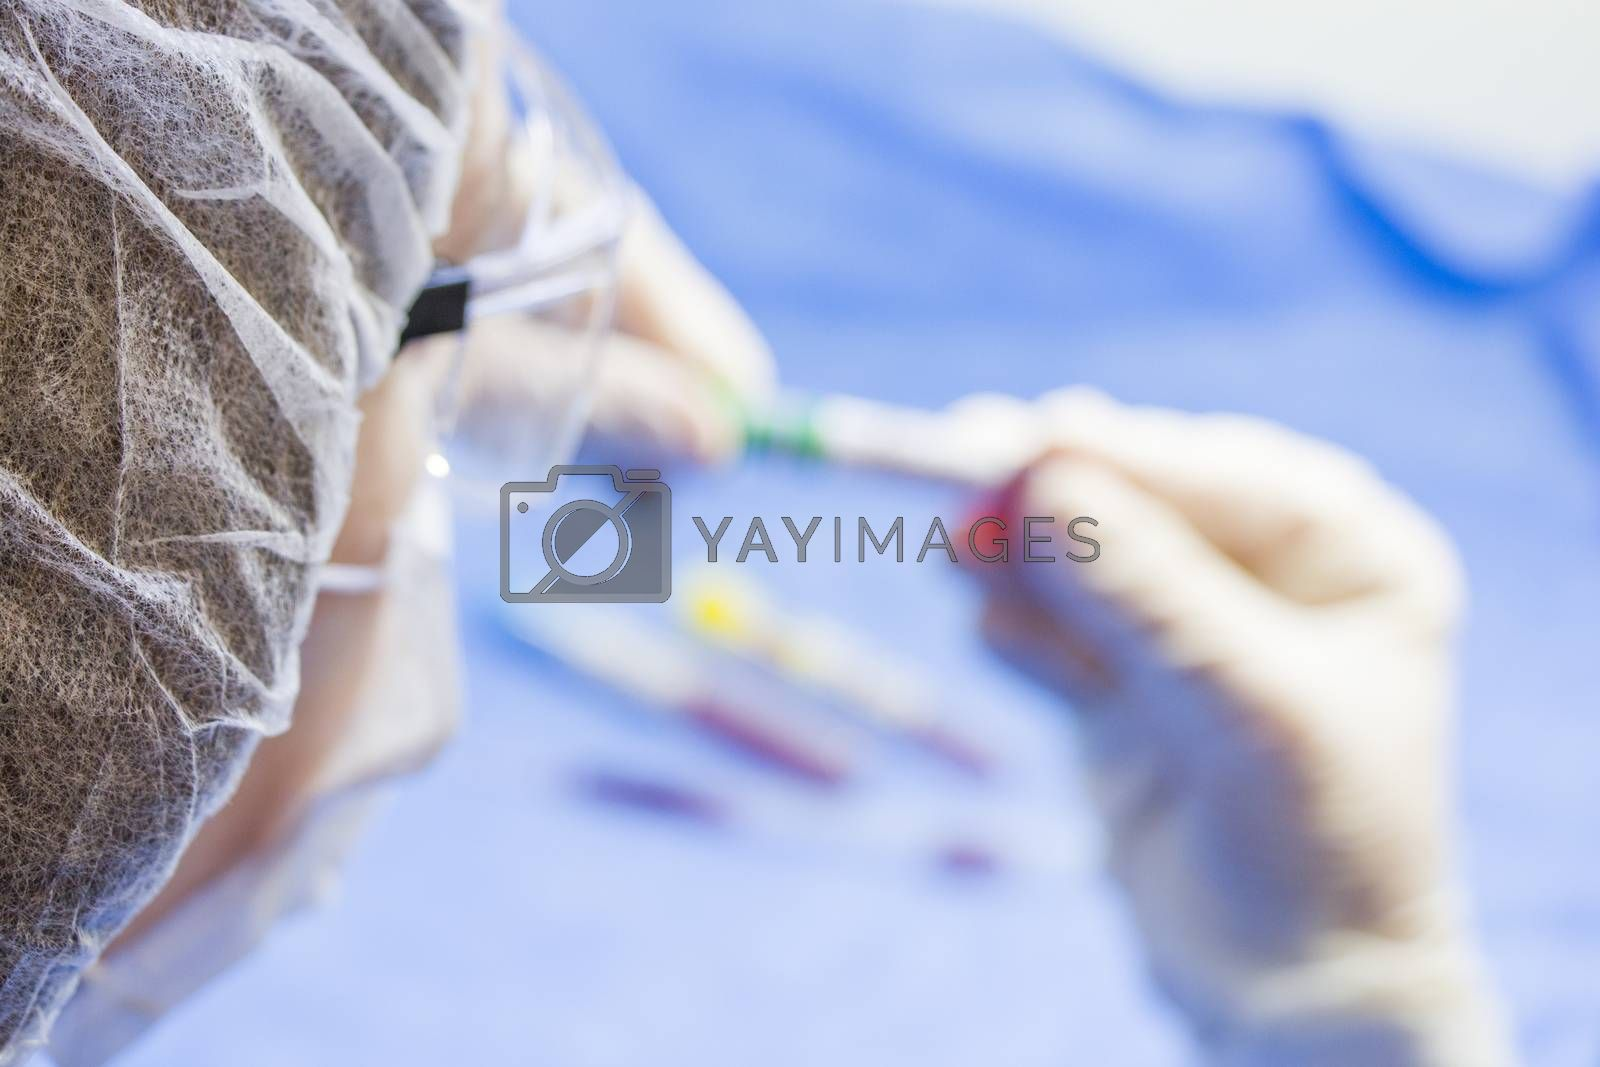 Doctors face and hands, tube and glove, laboratory situation. Blur photo for copy space.